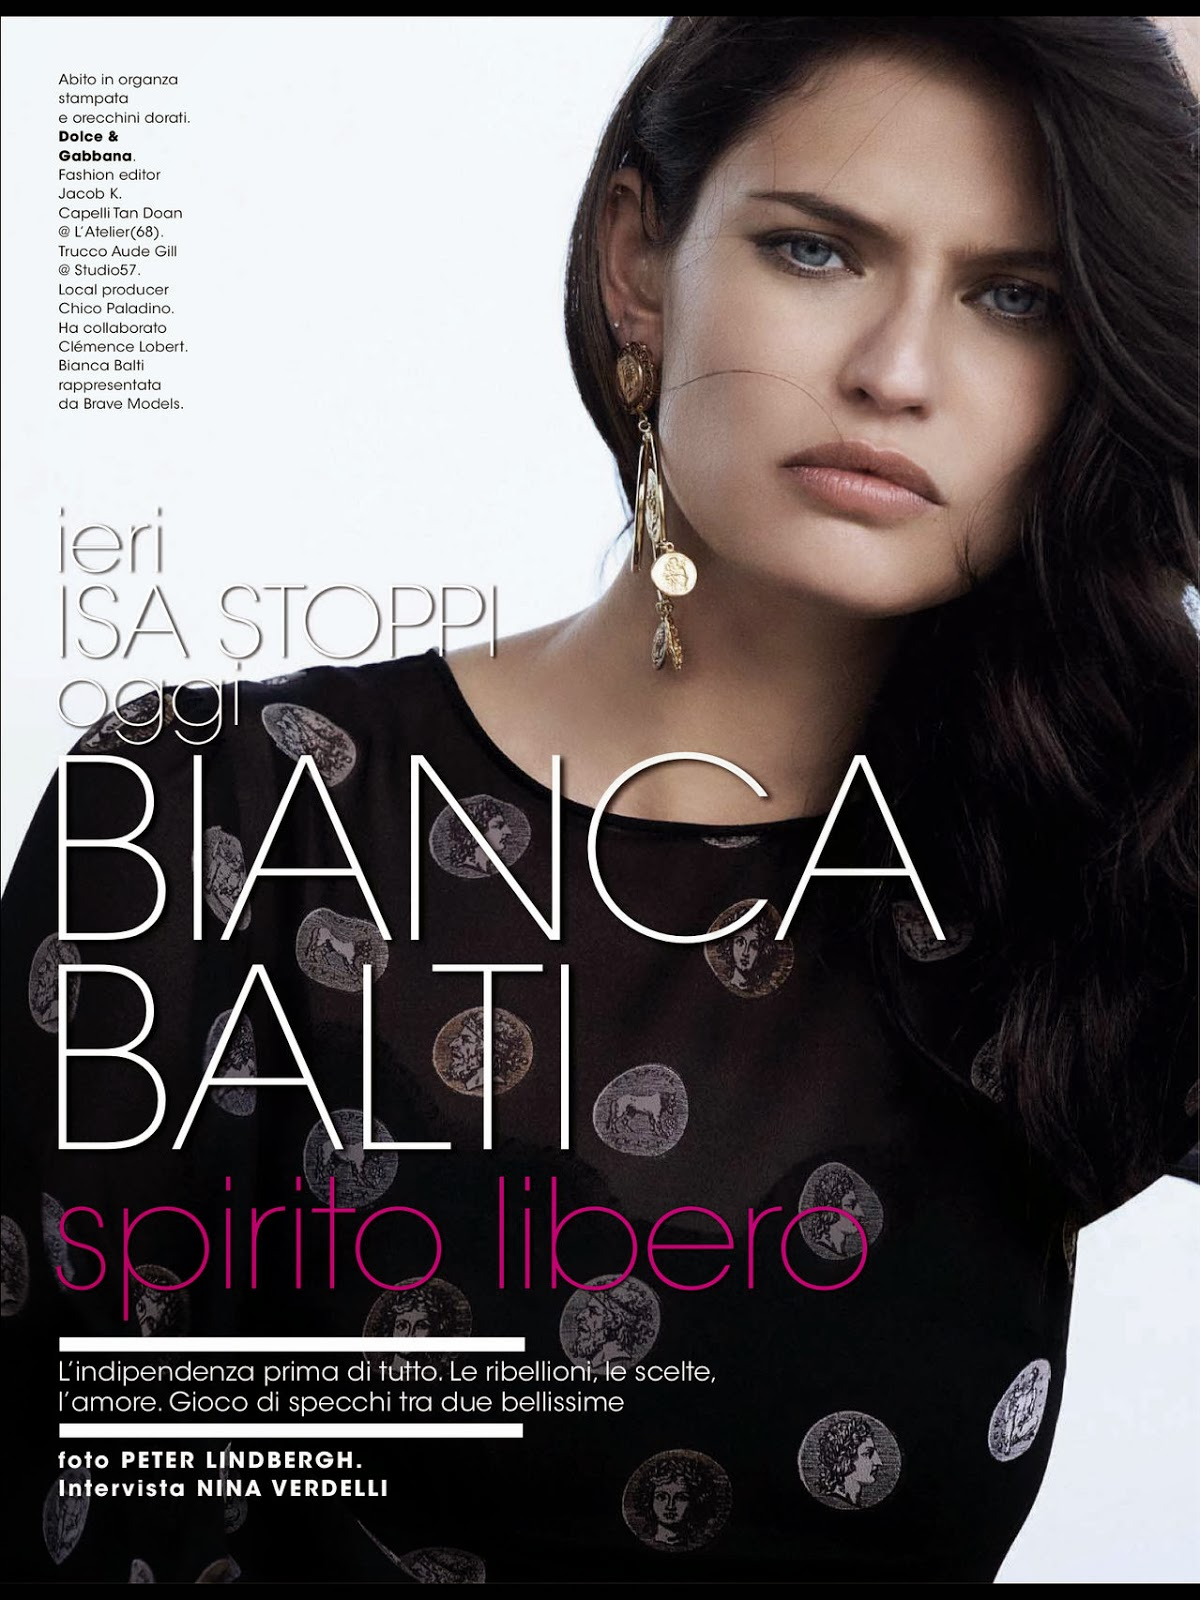 Magazine Photoshoot : Bianca Balti Photoshoot for Glamour Magazine Italia February 2014 Issue